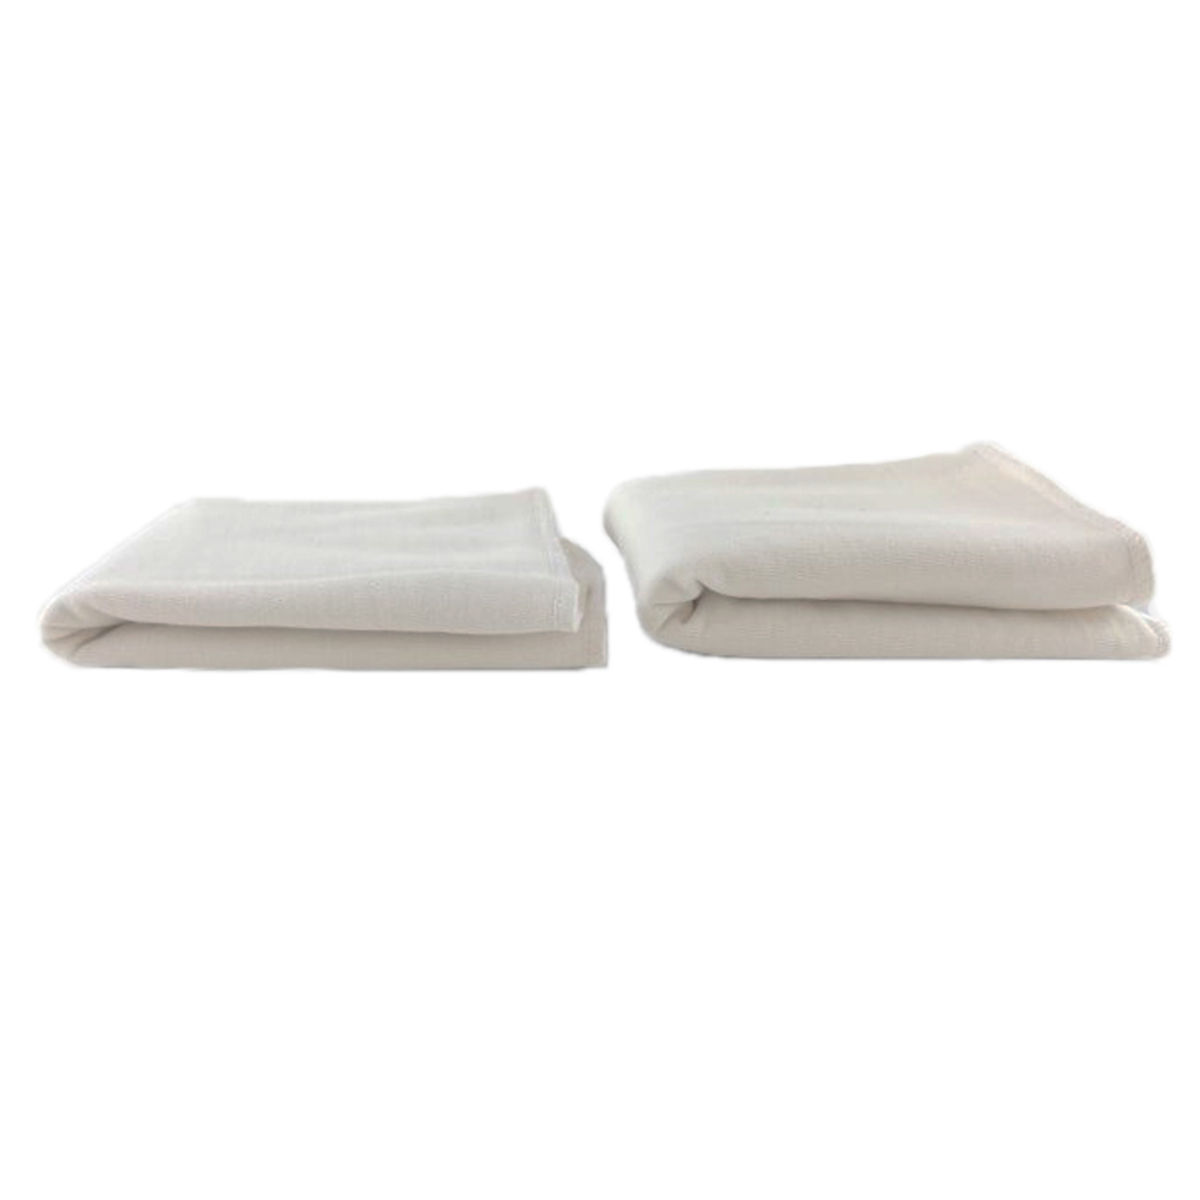 Couche Lot de 2 Absorbants Lavables en Coton Bio - Taille 2 Lot de 2 Absorbants Lavables en Coton Bio - Taille 2